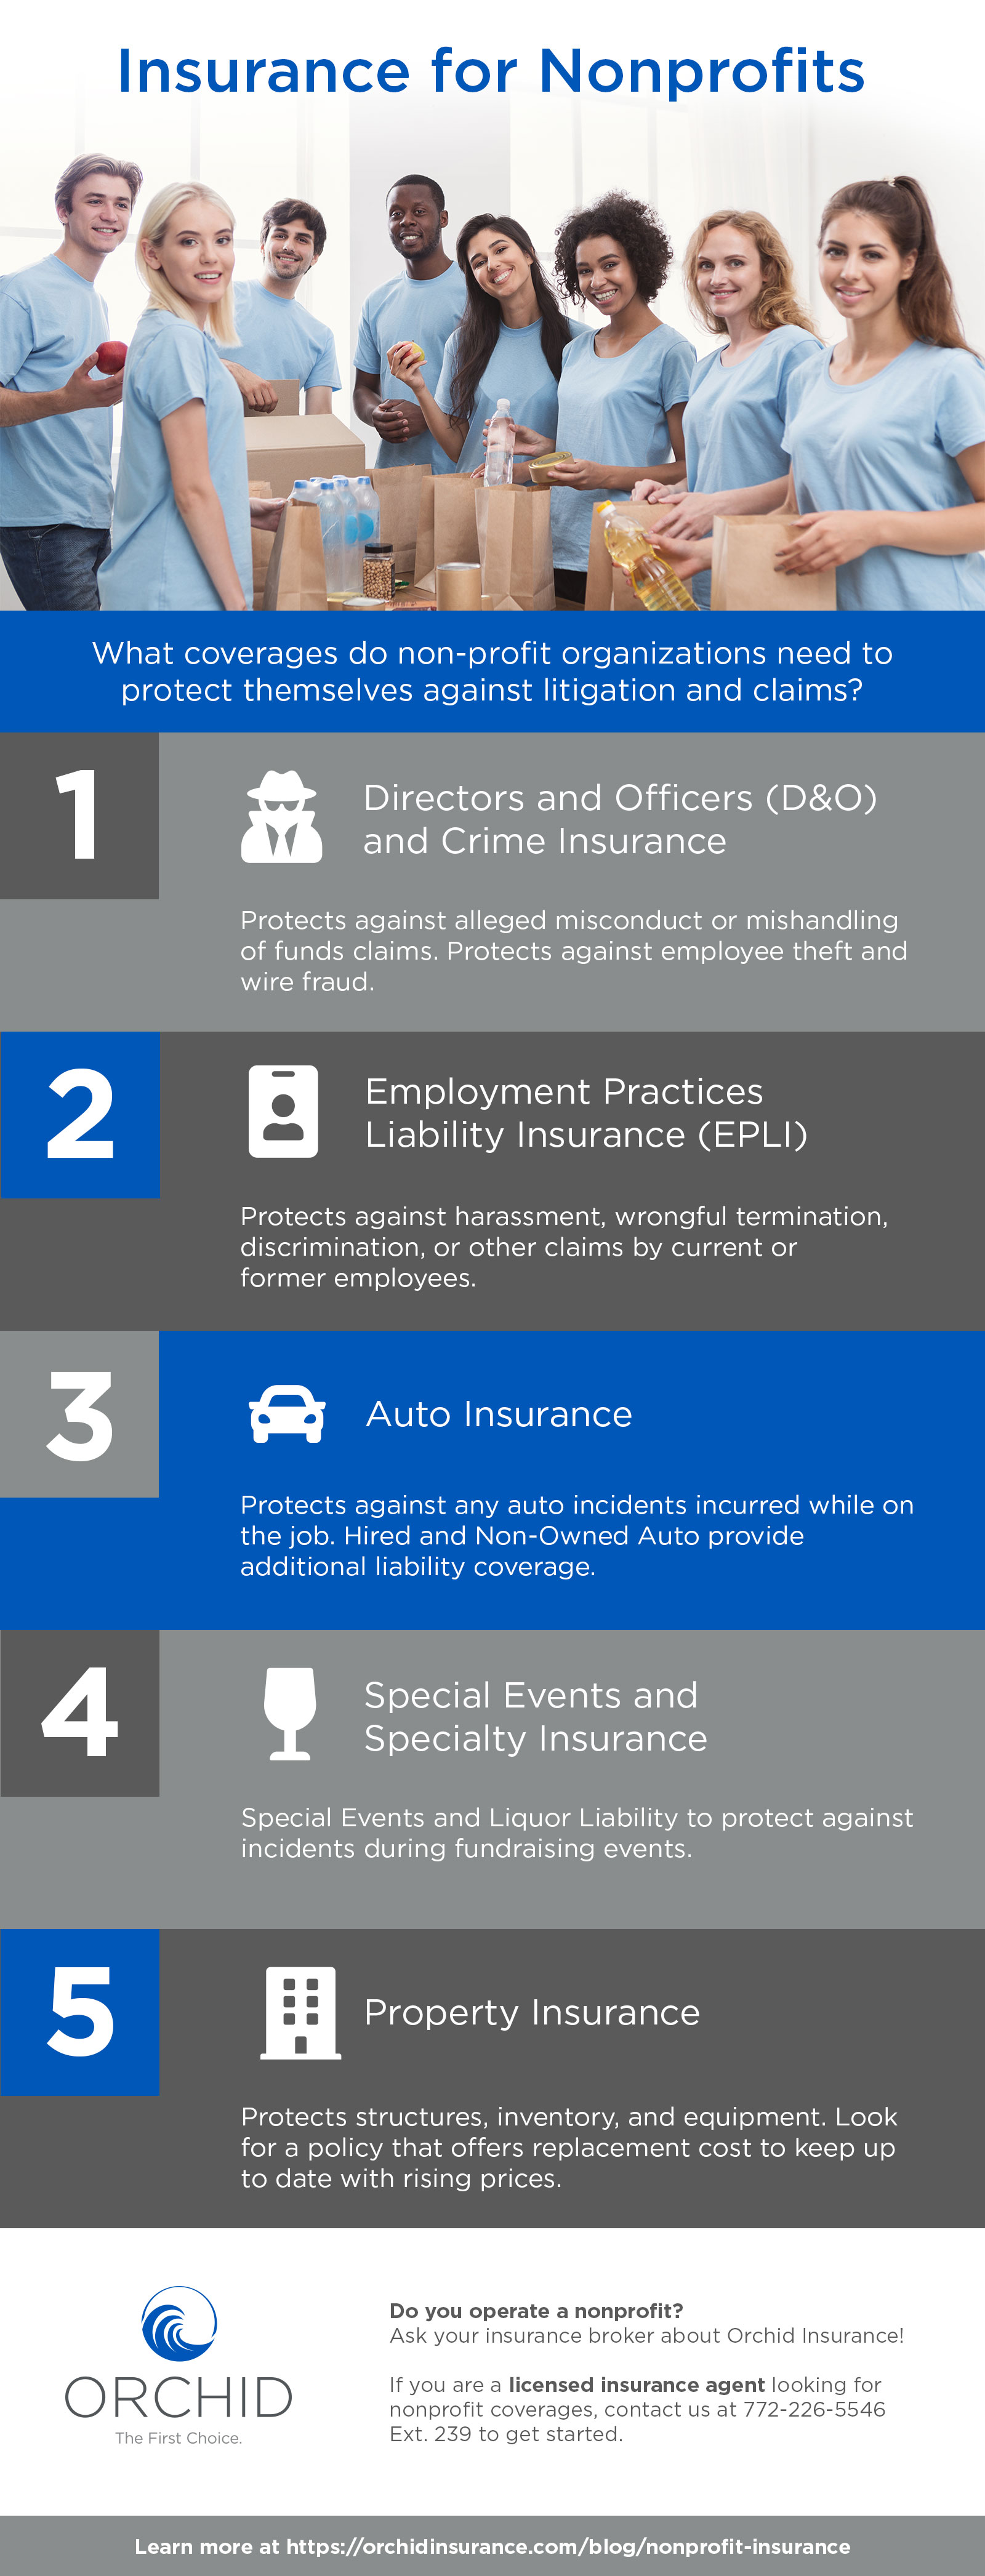 Nonprofit Insurance Infographic